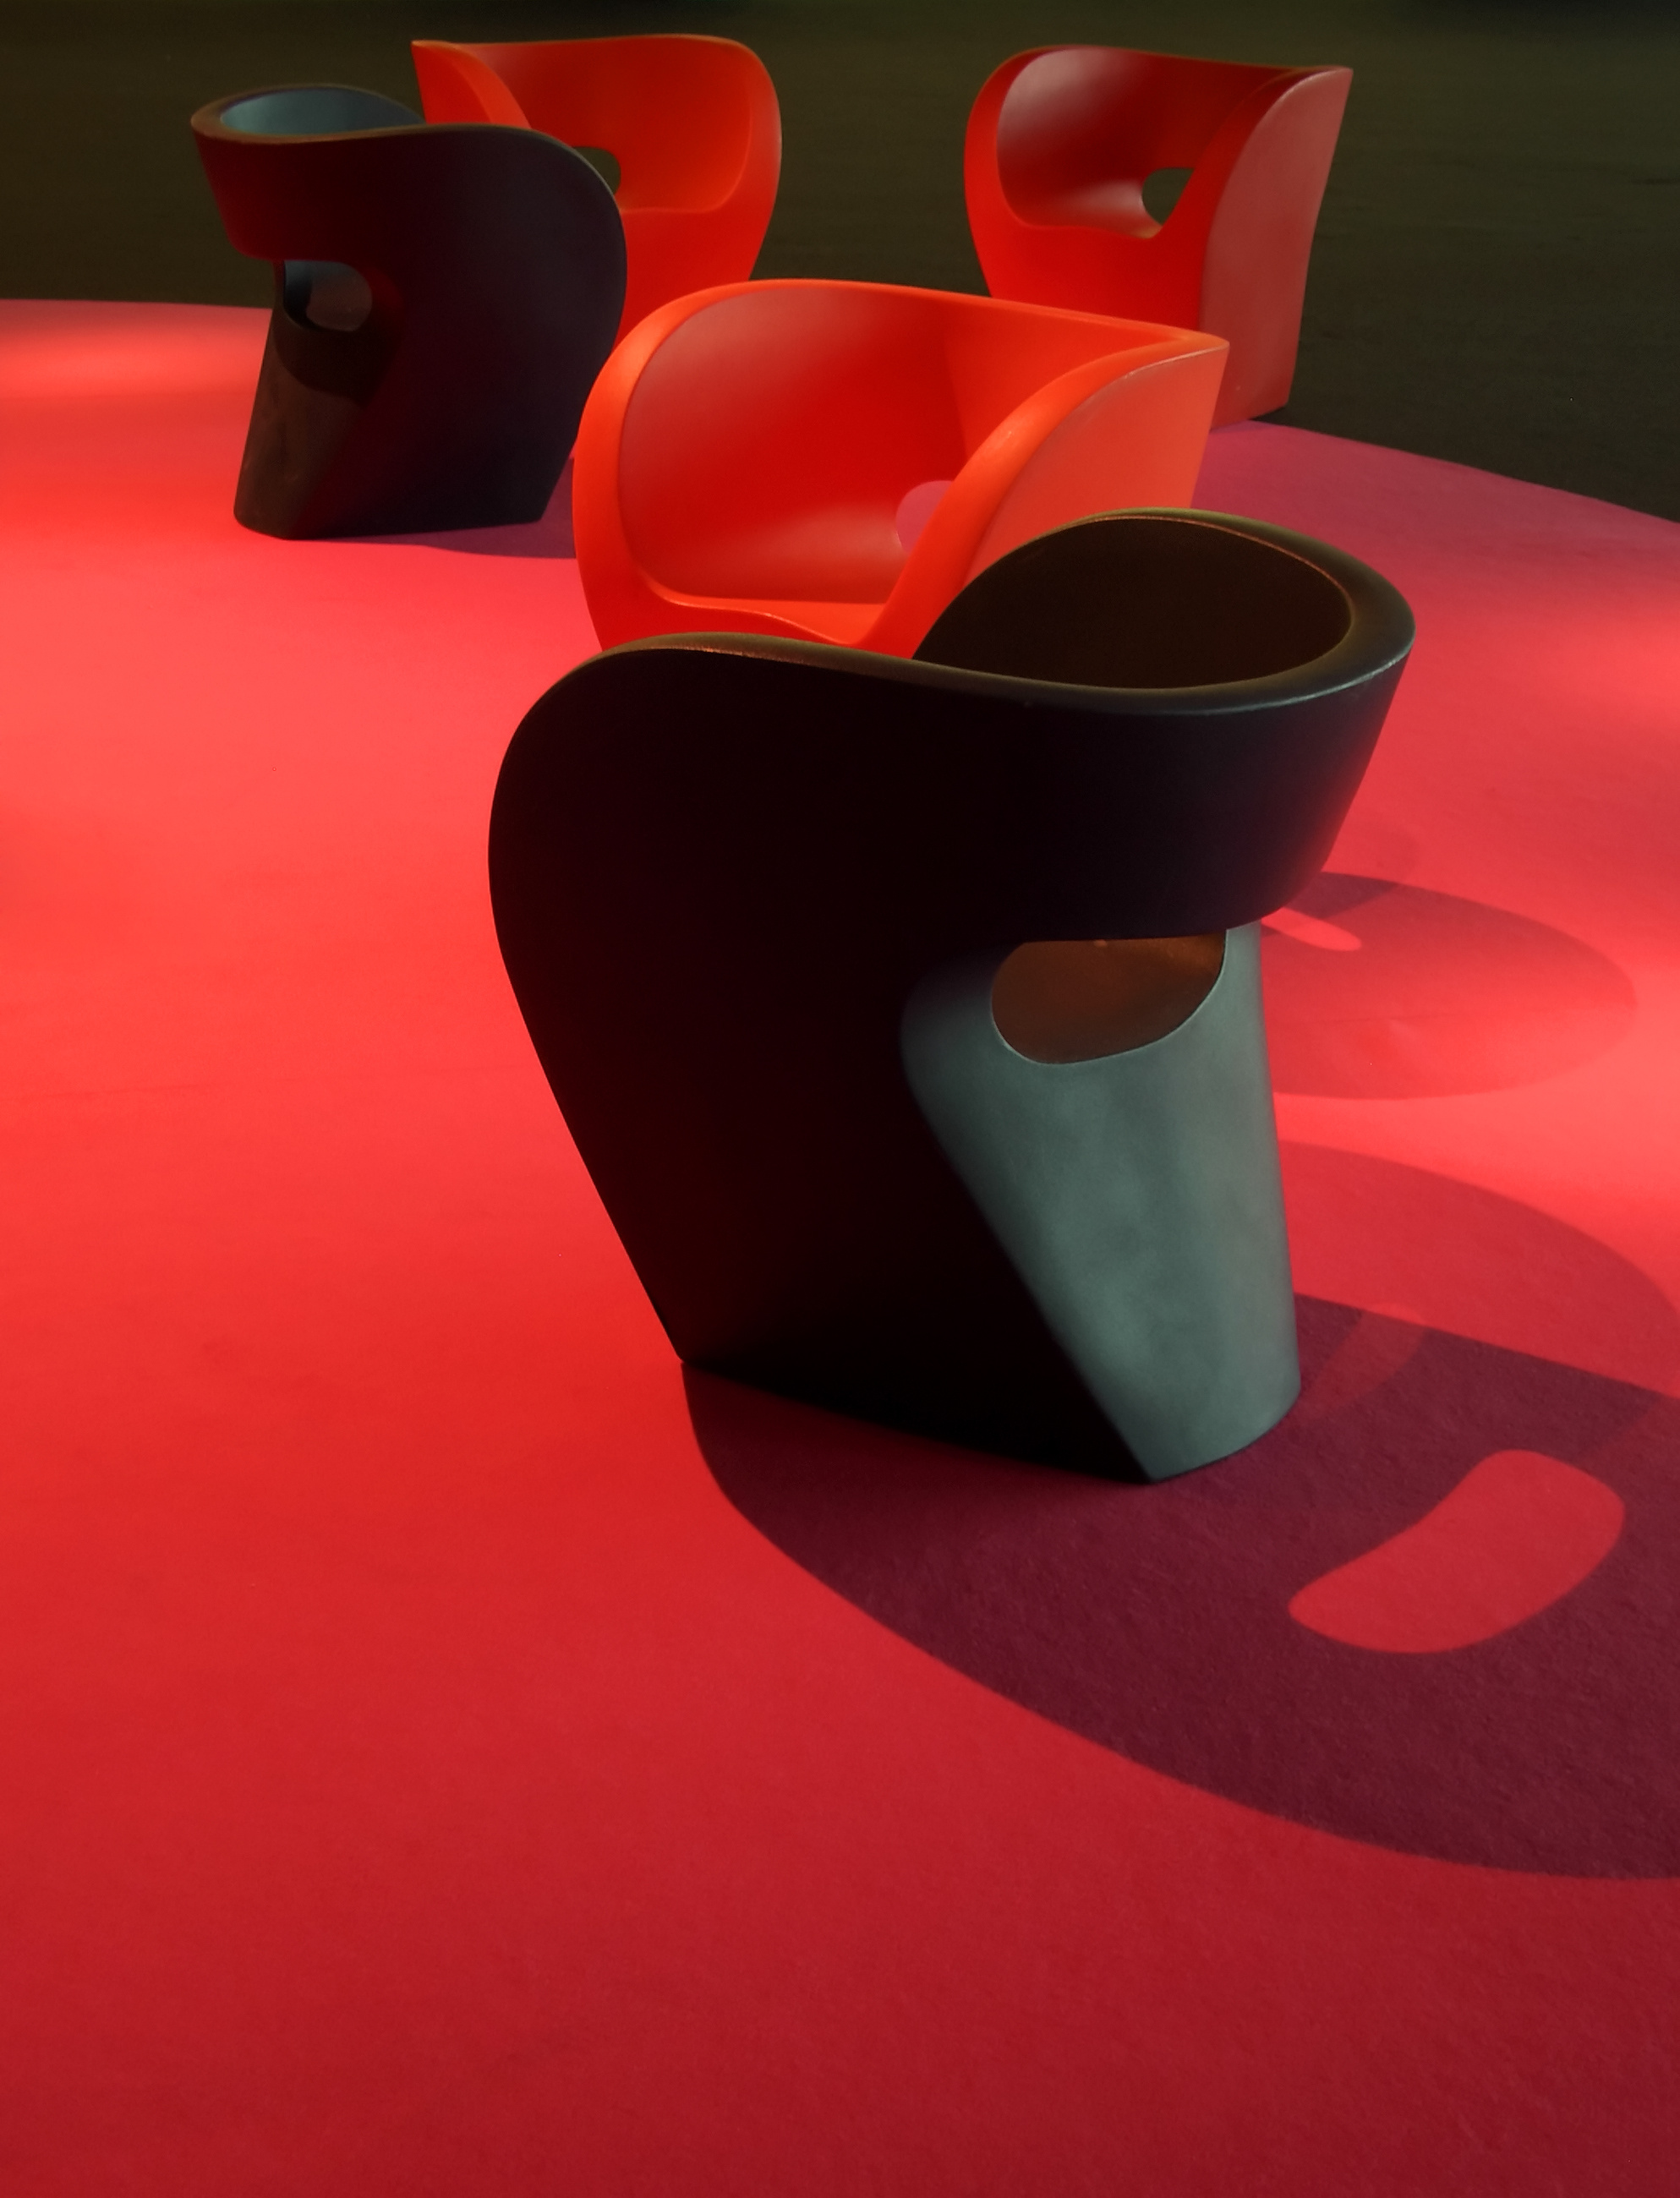 Several red and black plastic design couches on red magenta carpet with strong lighting